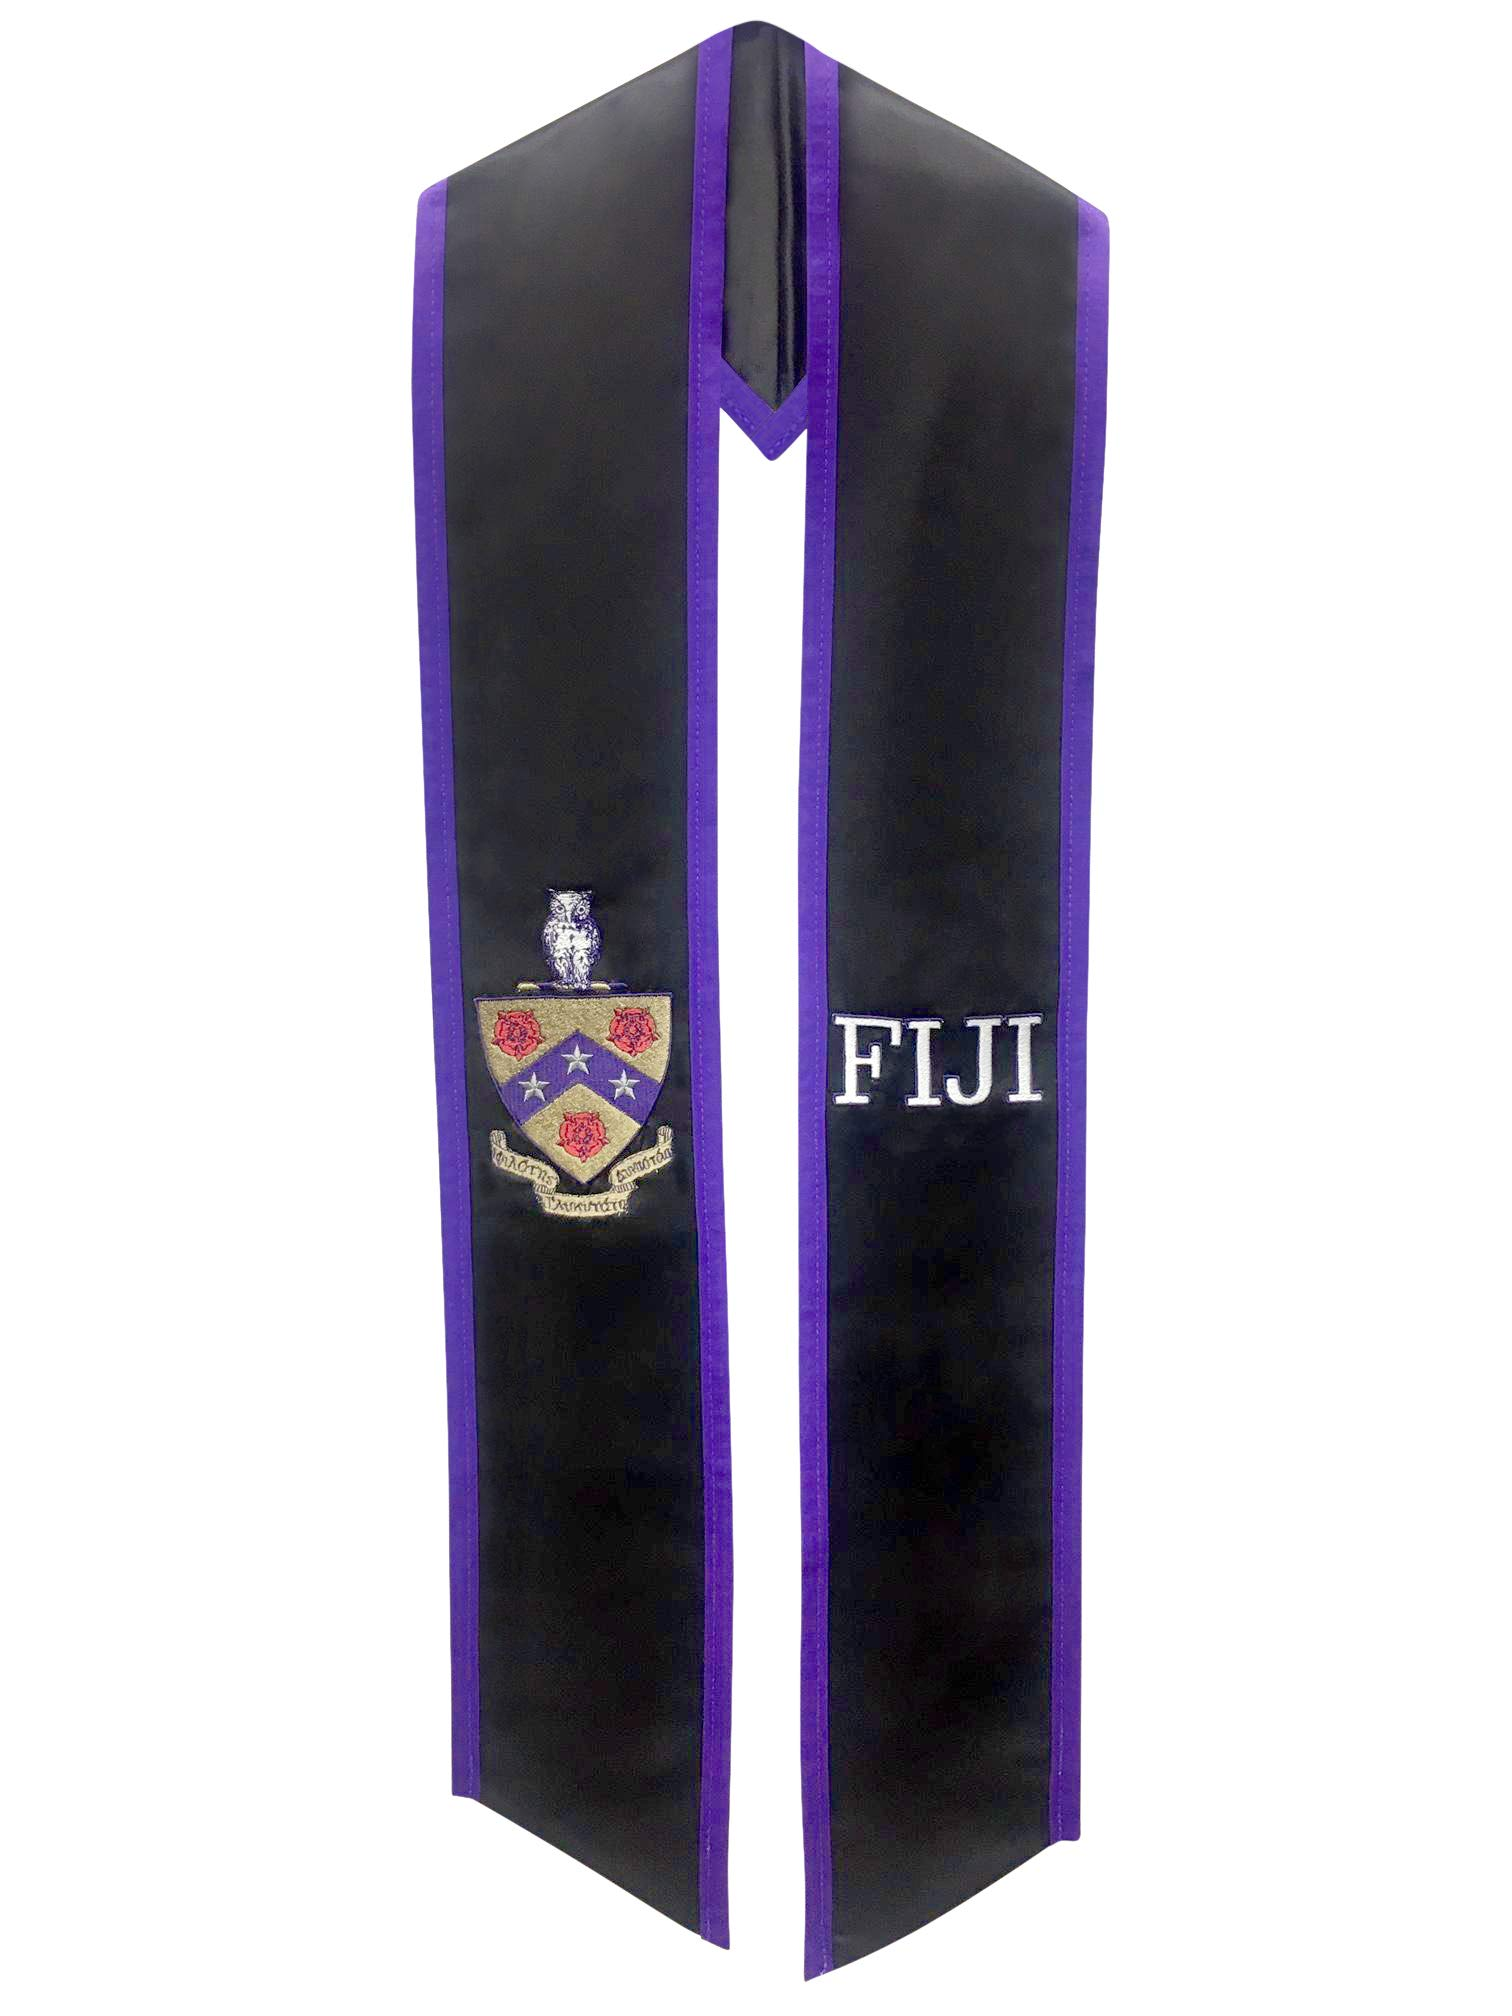 Phi Gamma Delta FIJI Fraternity Deluxe Embroidered Graduation Stole